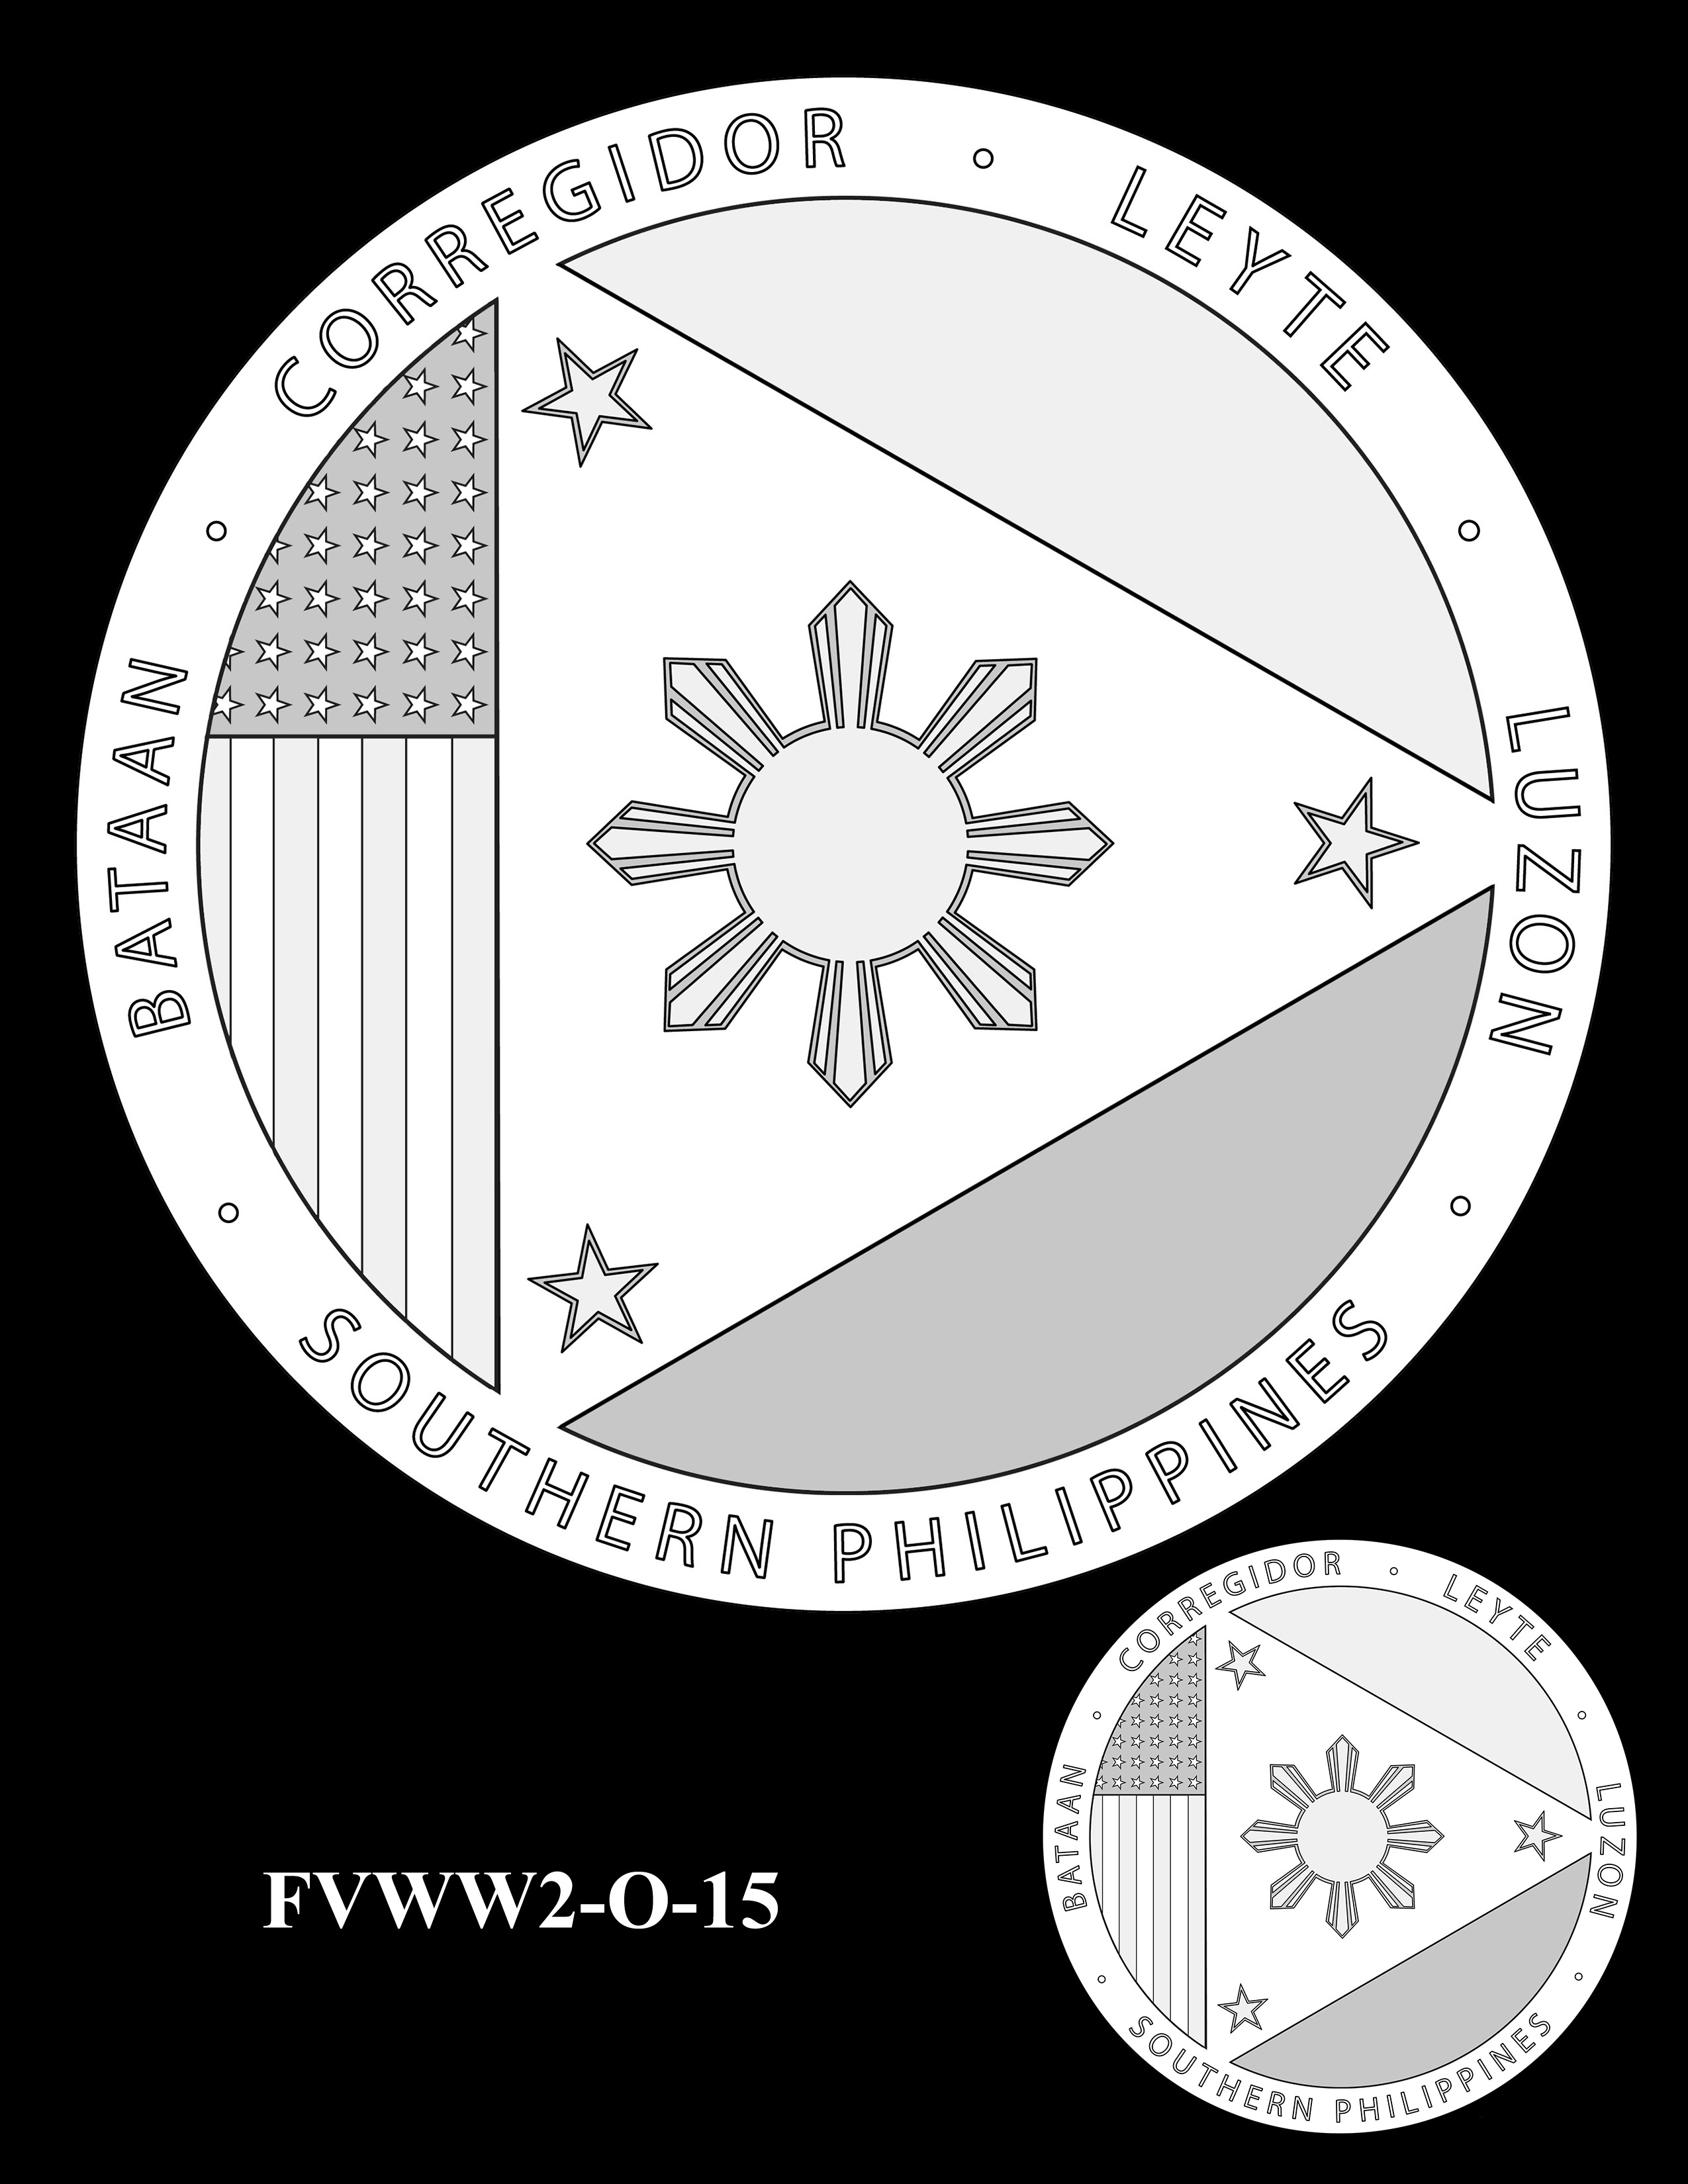 FVWW2-O-15 -- Filipino Veterans of World War II Congressional Gold Medal